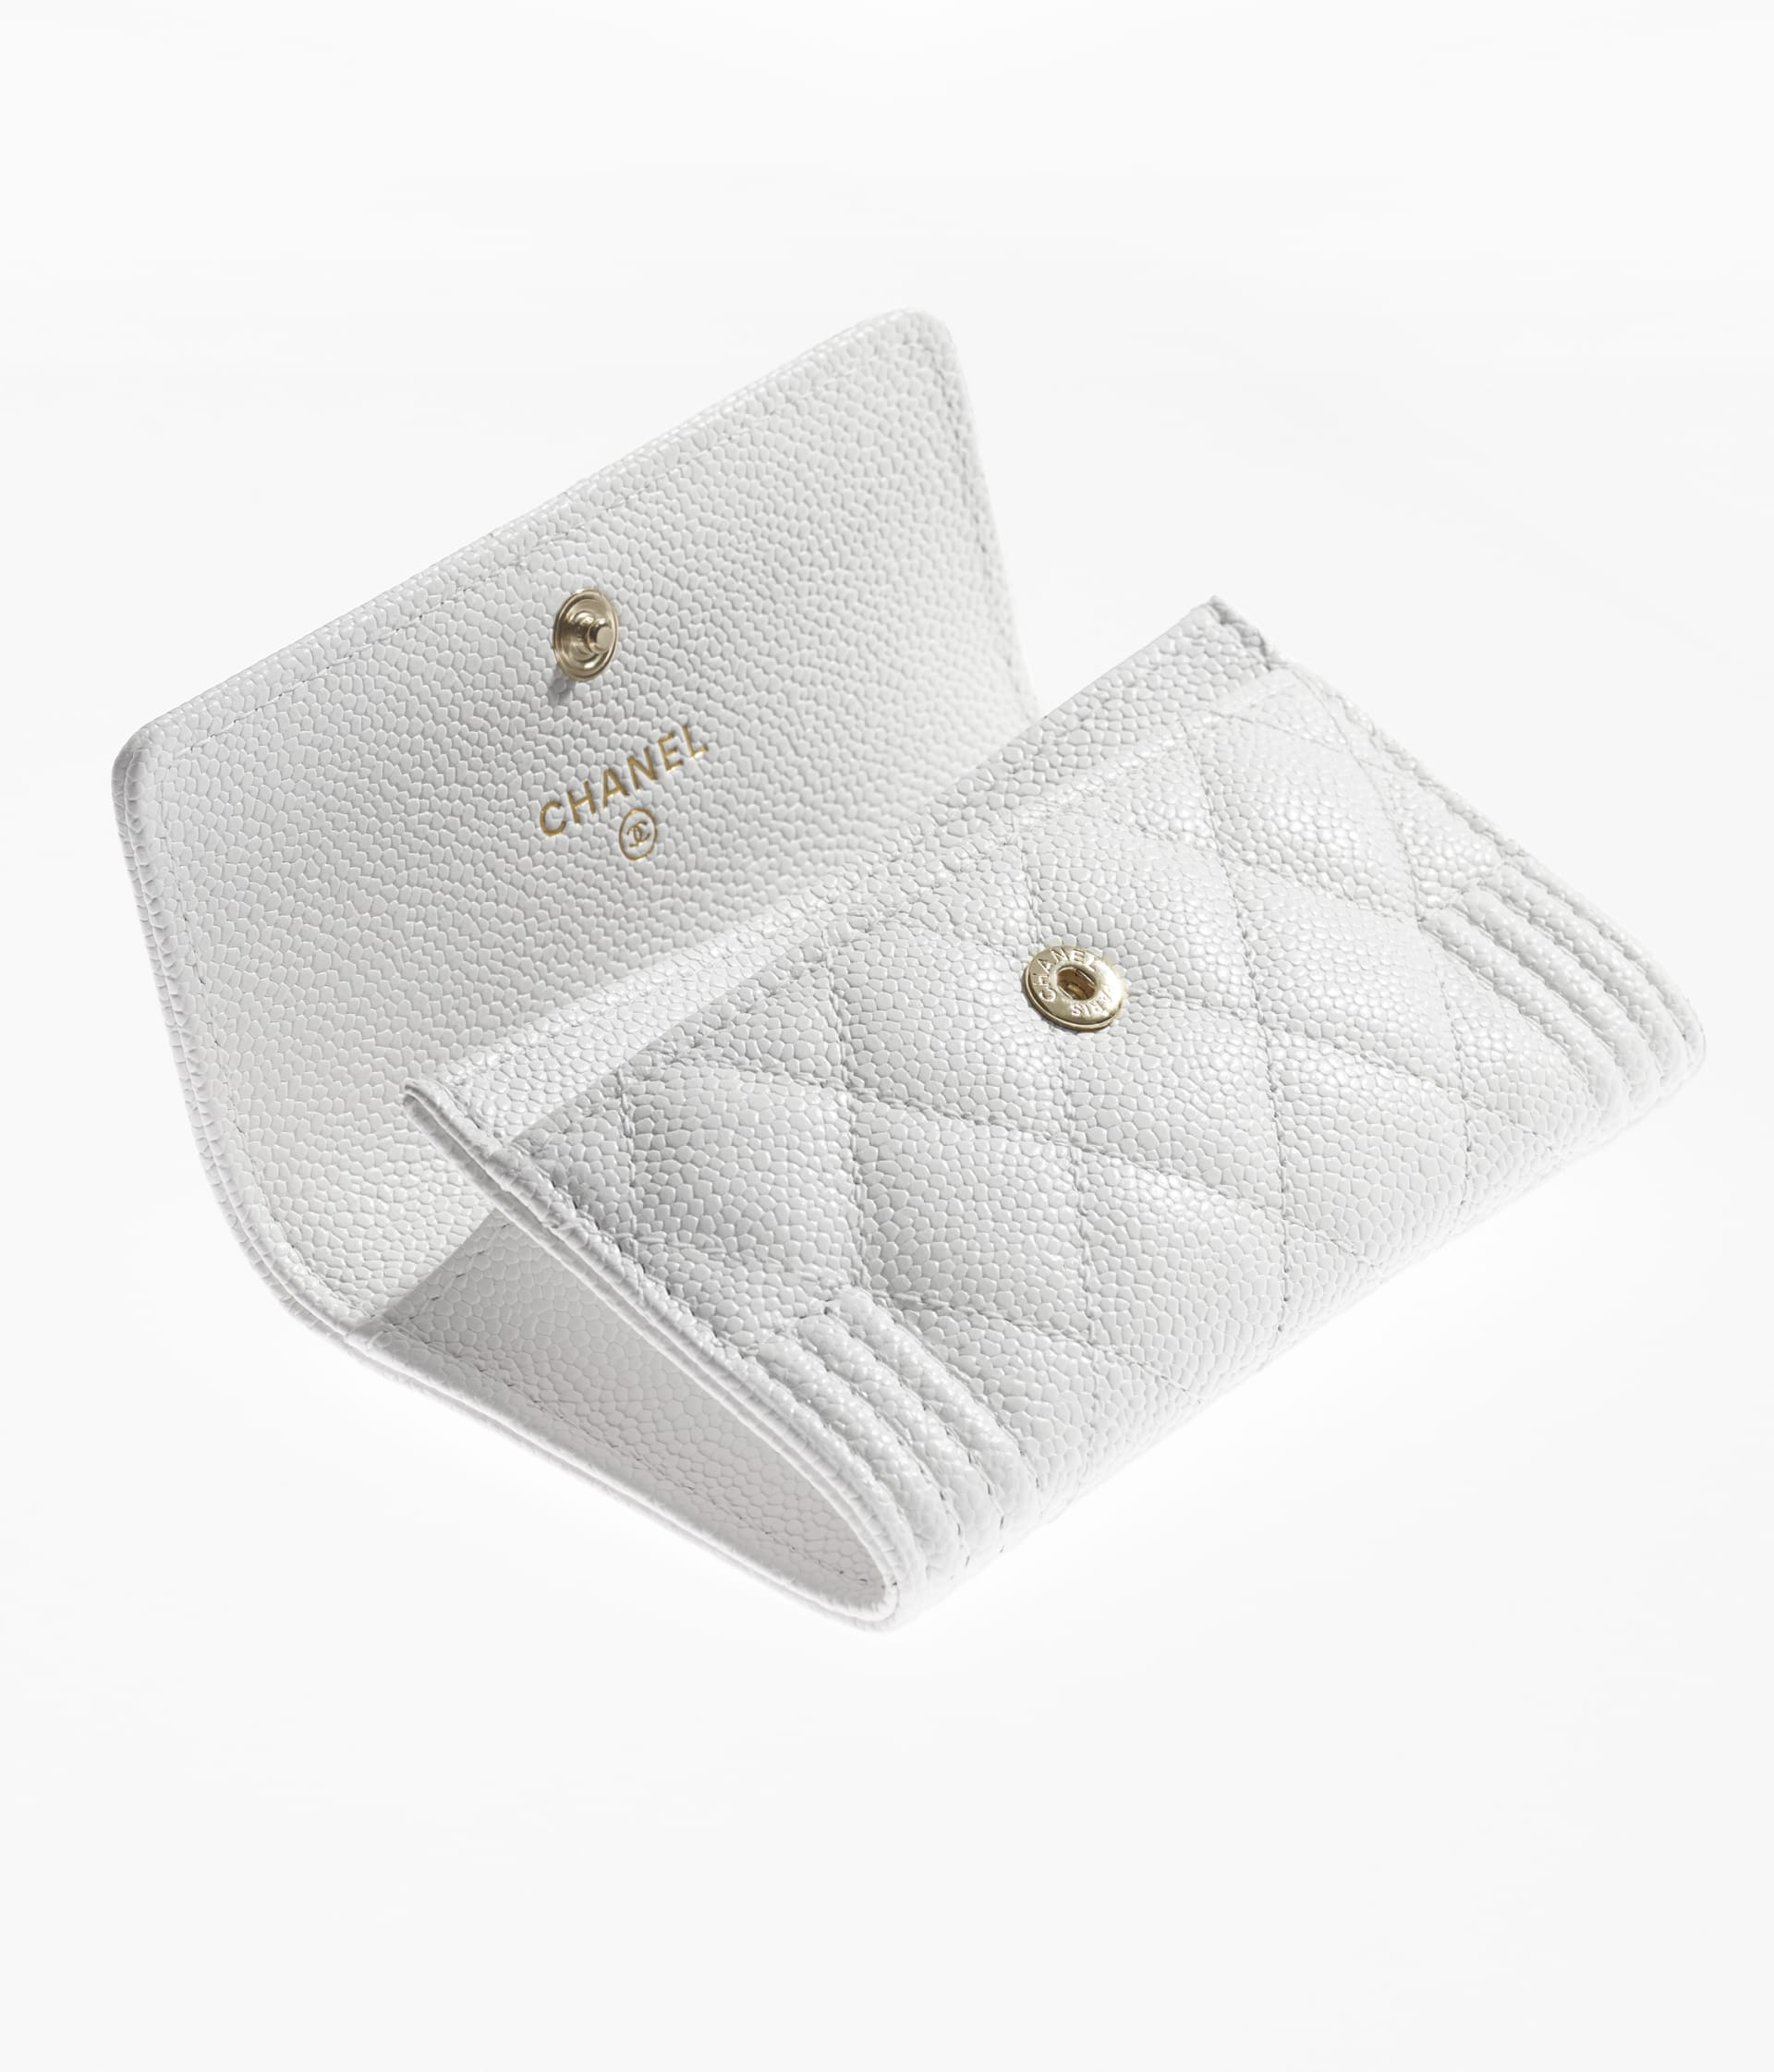 image 3 - BOY CHANEL Flap Card Holder - Grained Calfskin & Gold-Tone Metal - White